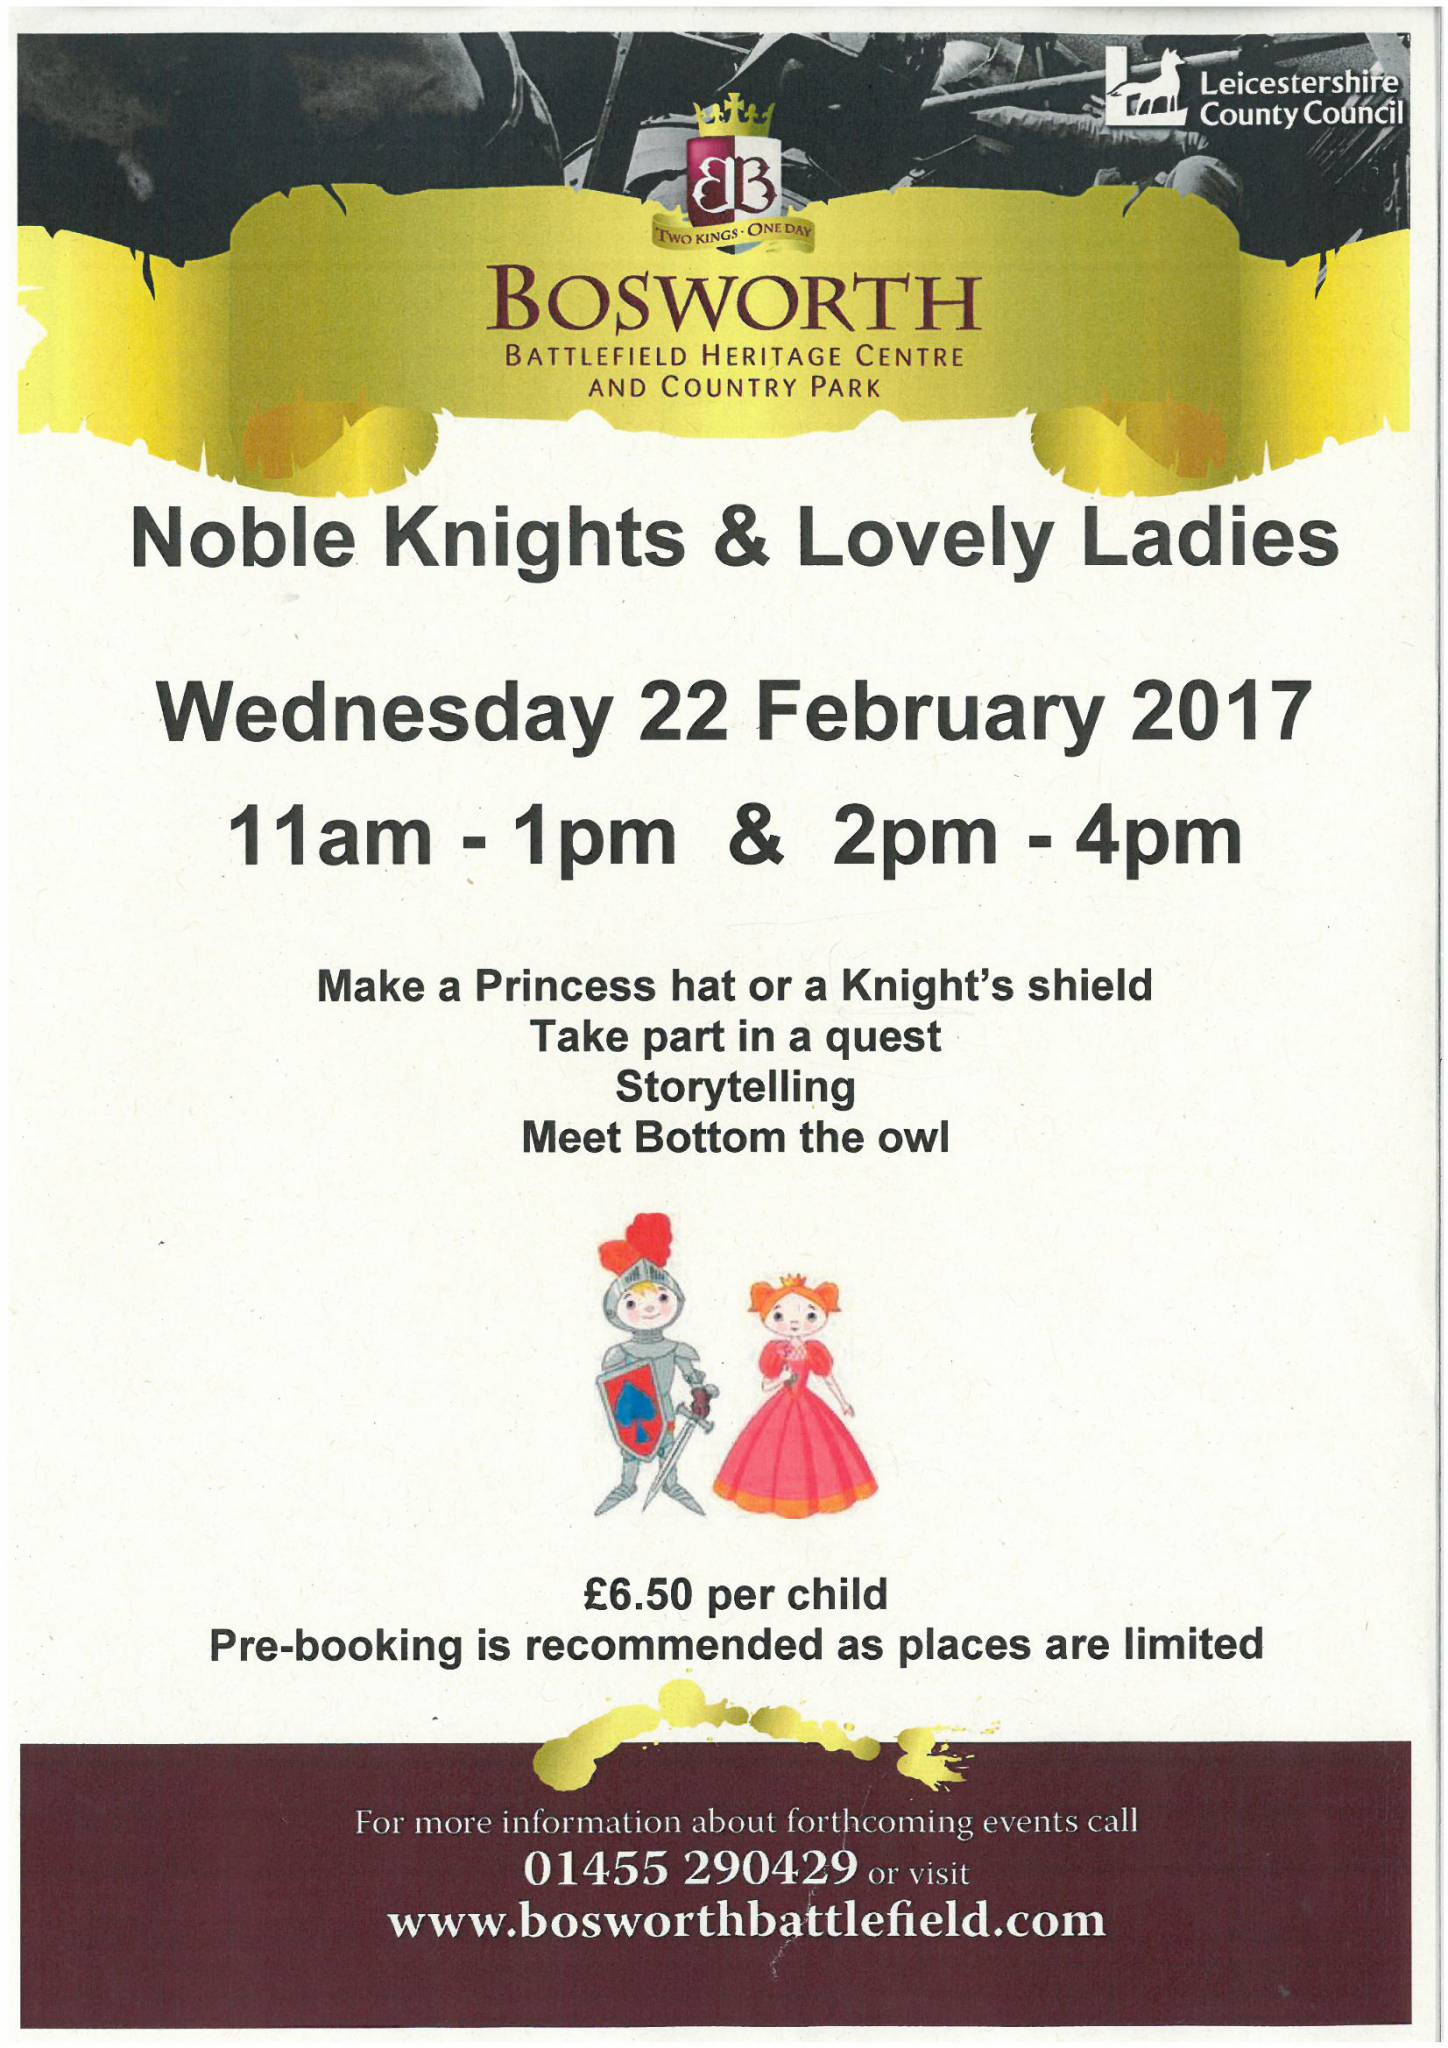 Noble Knights & Lovely Ladies